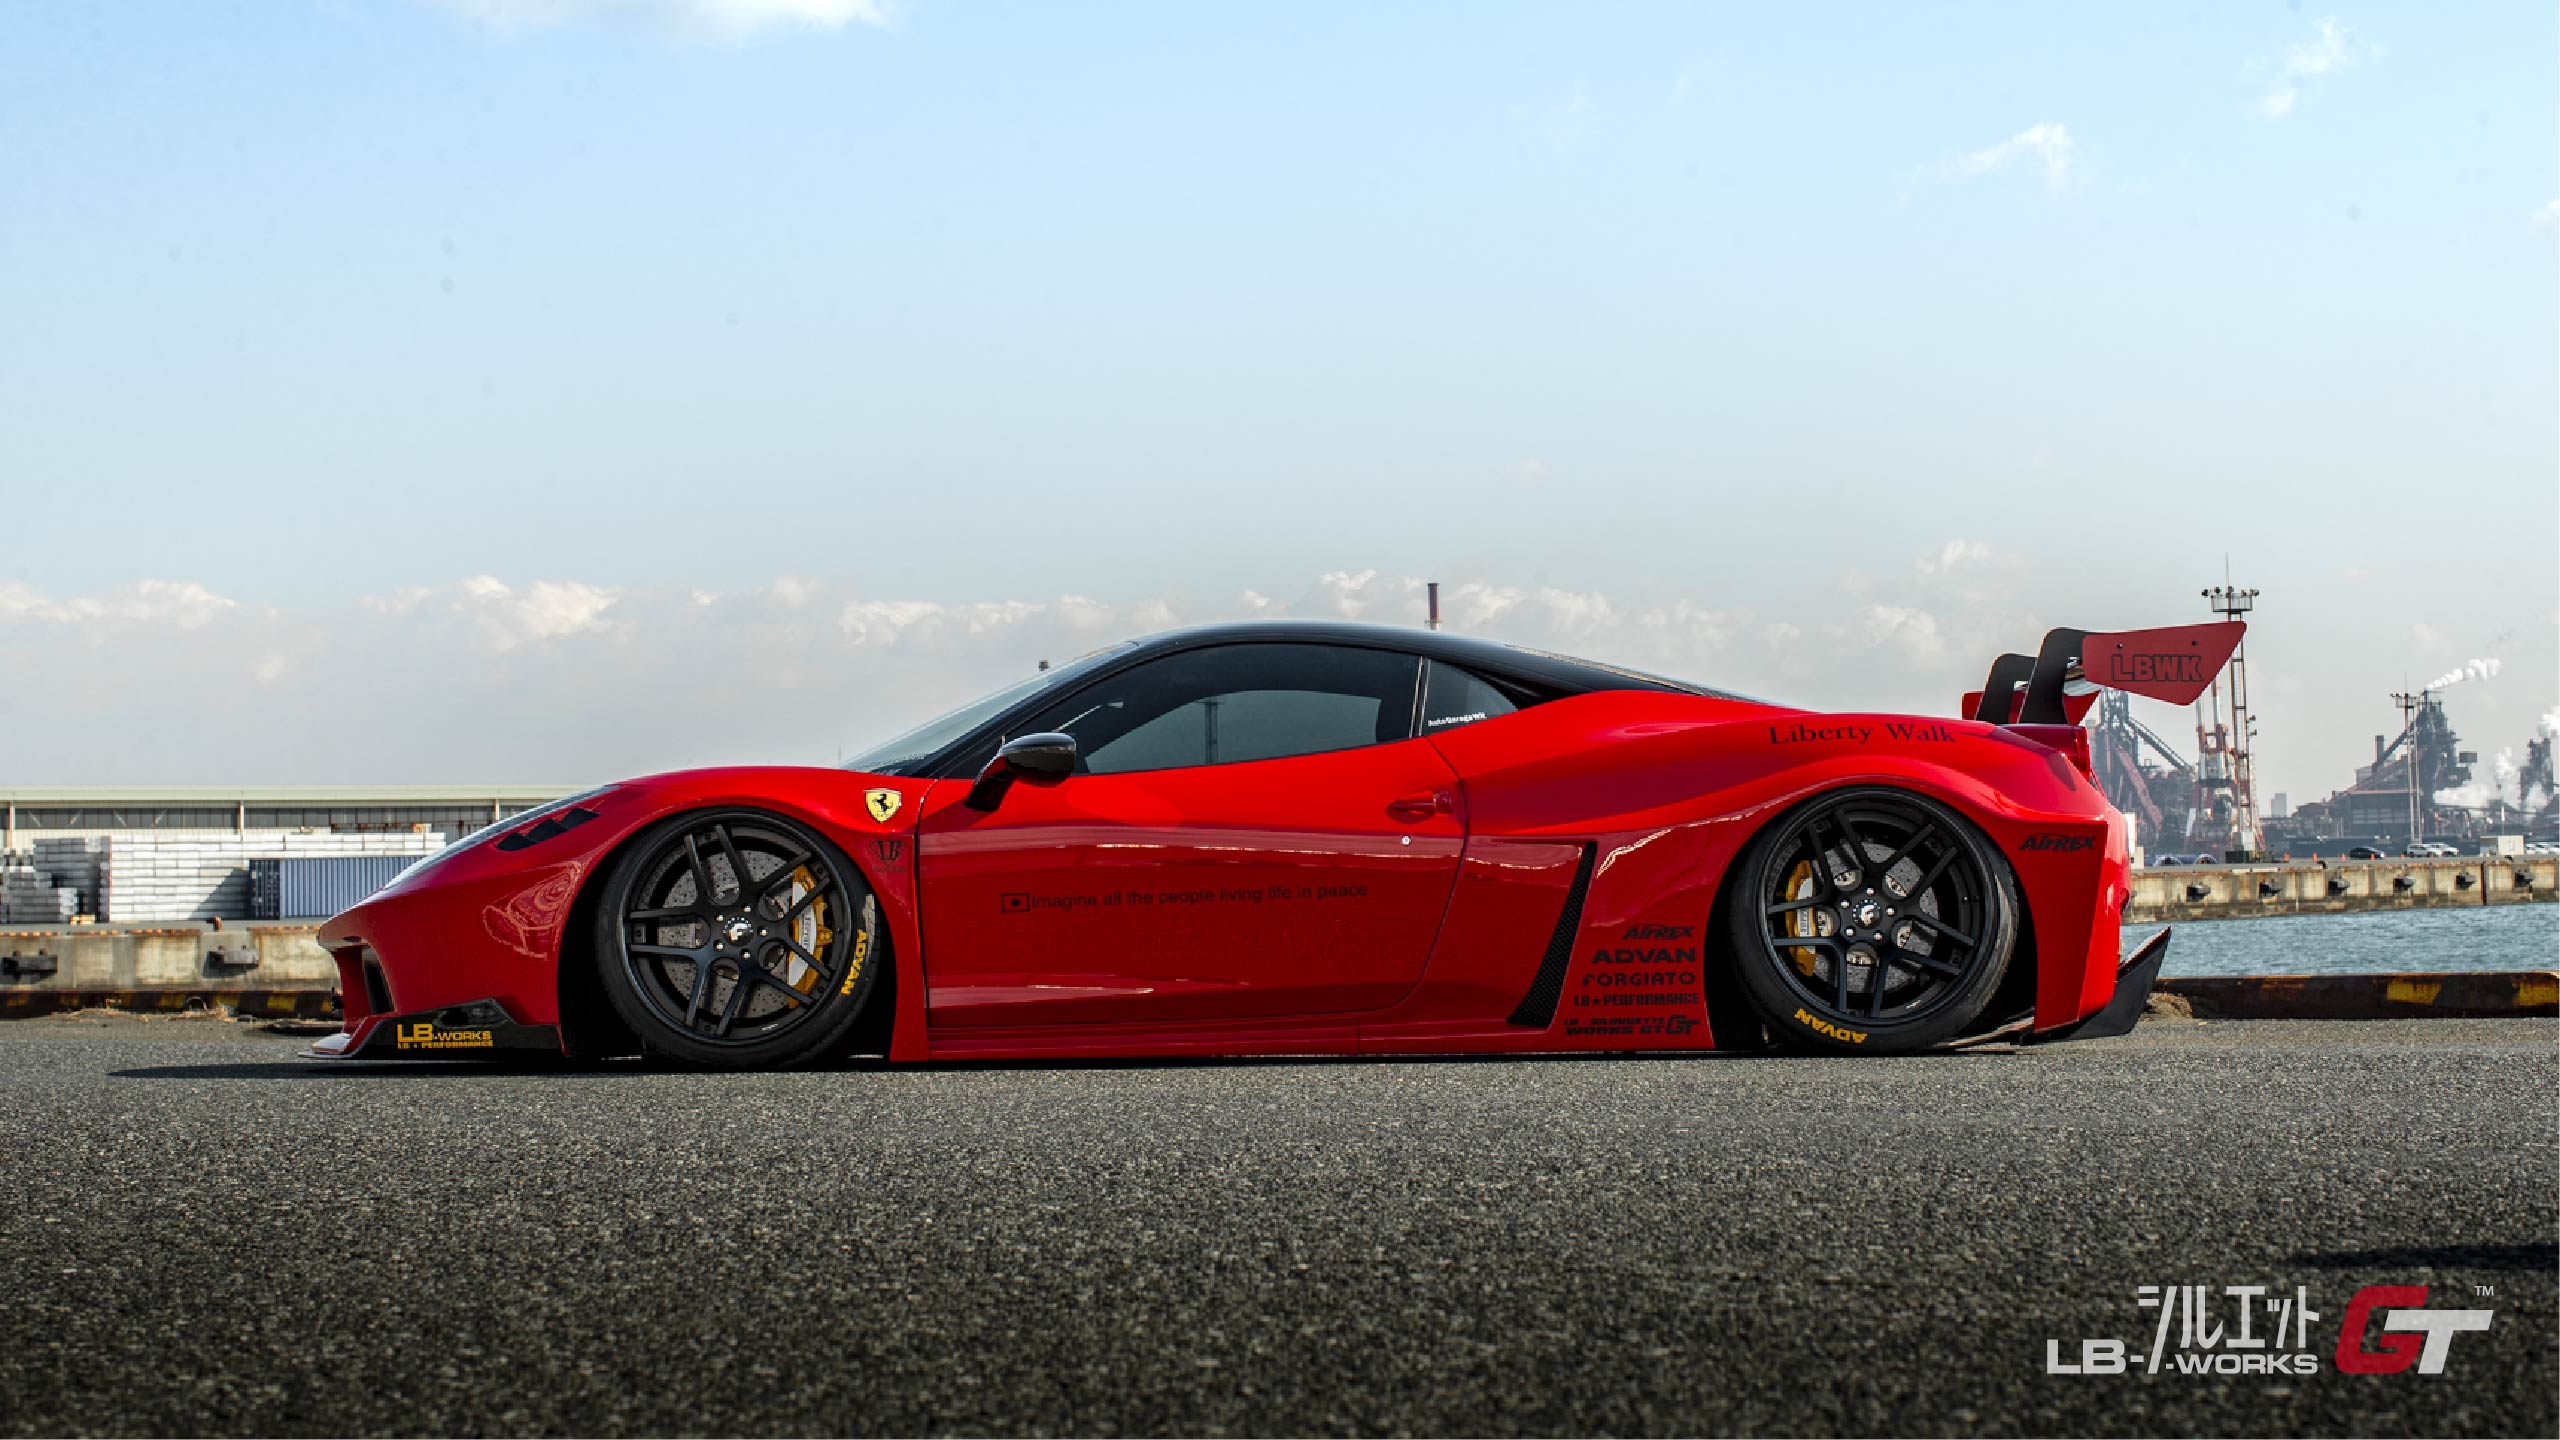 458gt_13-50 LB-Silhouette WORKS 458 GT